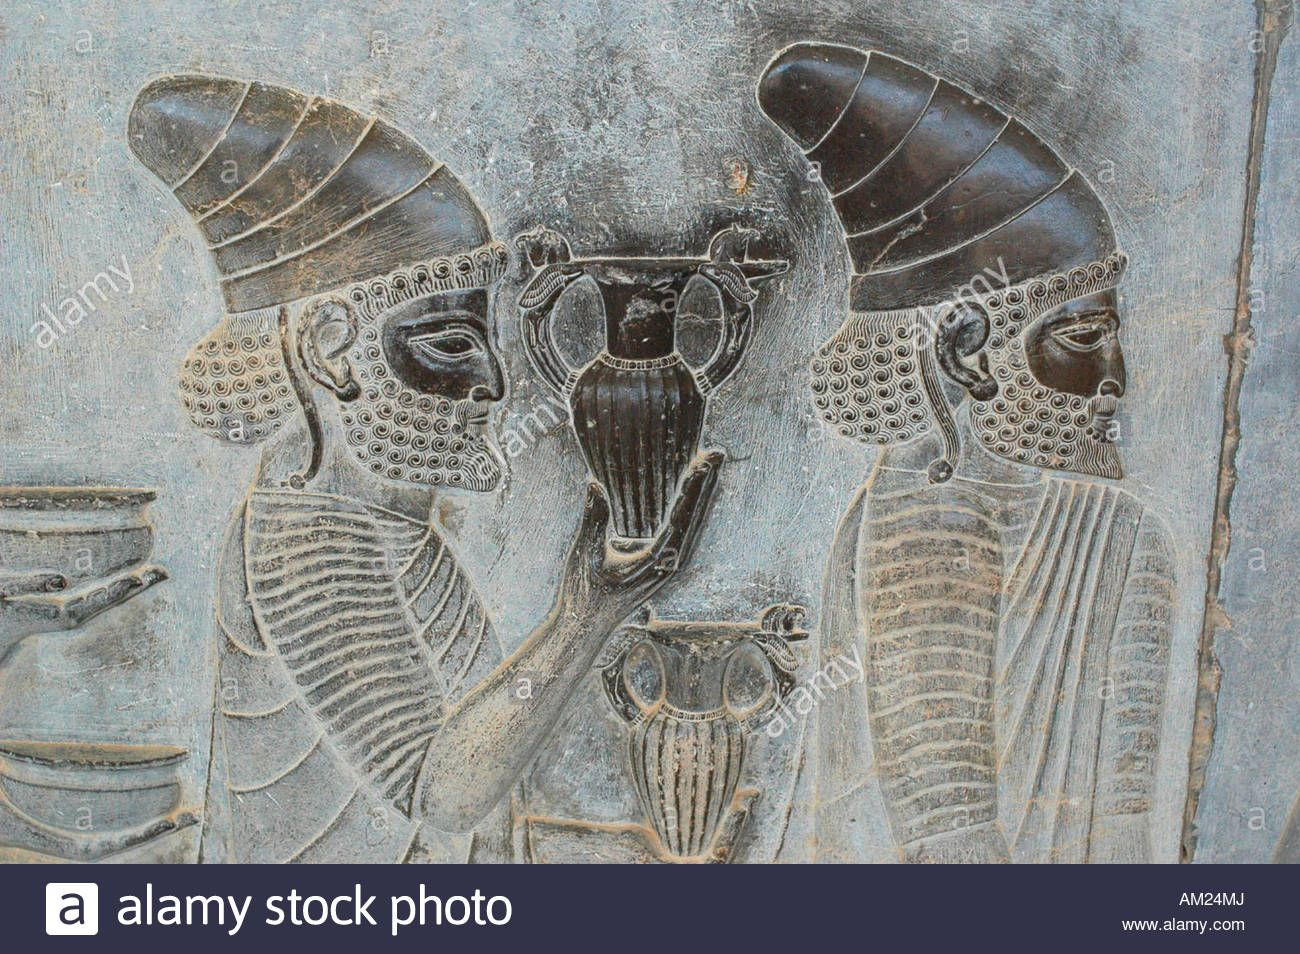 Slaves And Soldiers Carry Gifts For Persian Emperor In Xerxes Palace Persepolis Iran Stock Photo Ancient Persia Ancient Persian